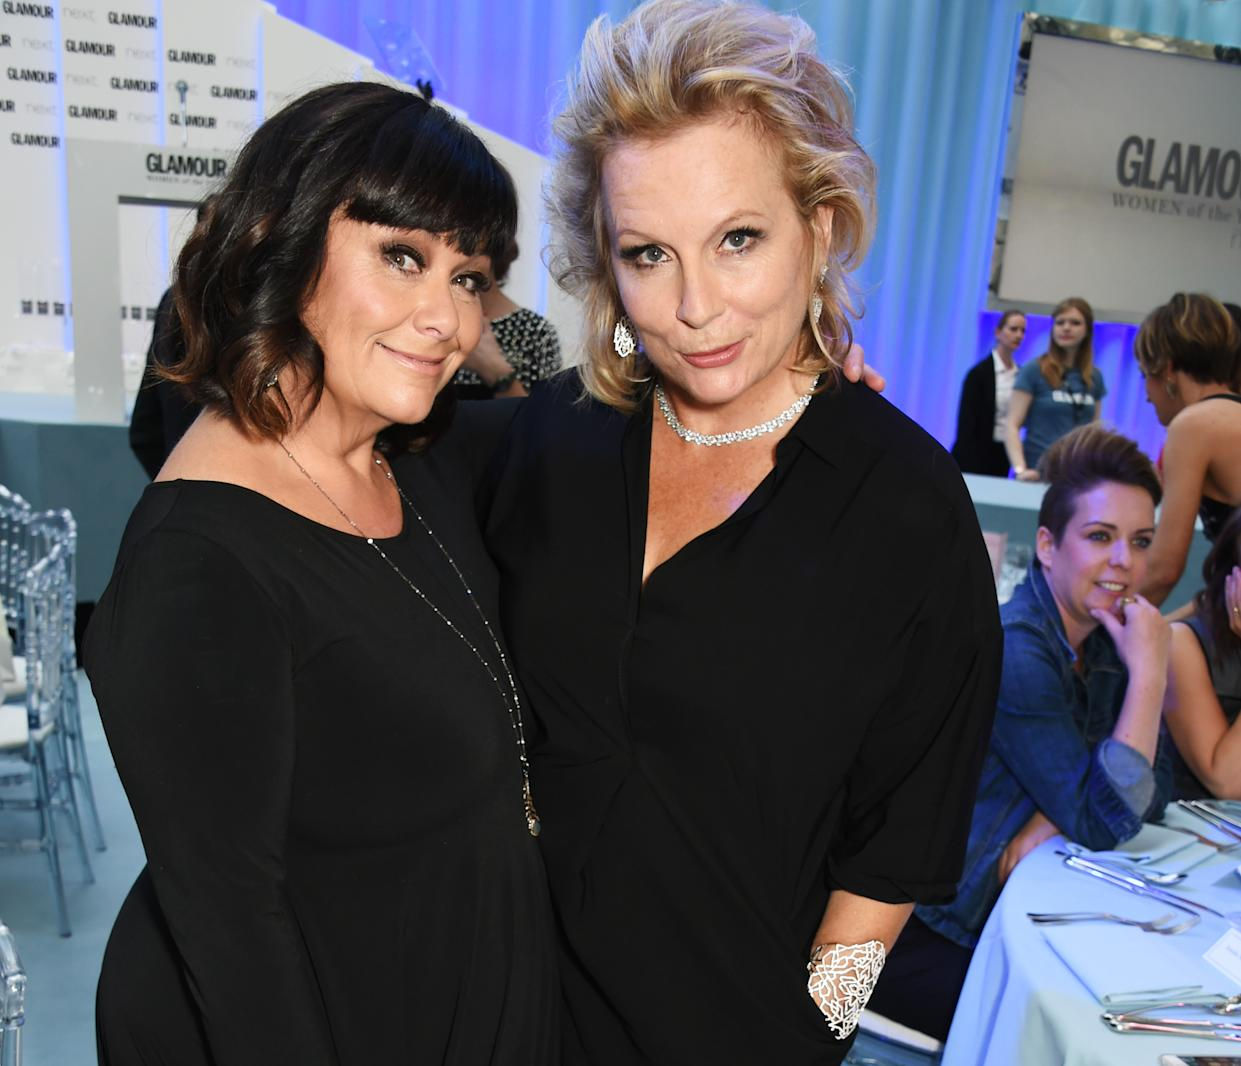 LONDON, ENGLAND - JUNE 07:  Dawn French (L) and Jennifer Saunders attend the Glamour Women Of The Year Awards in Berkeley Square Gardens on June 7, 2016 in London, United Kingdom.  (Photo by David M. Benett/Dave Benett/Getty Images)